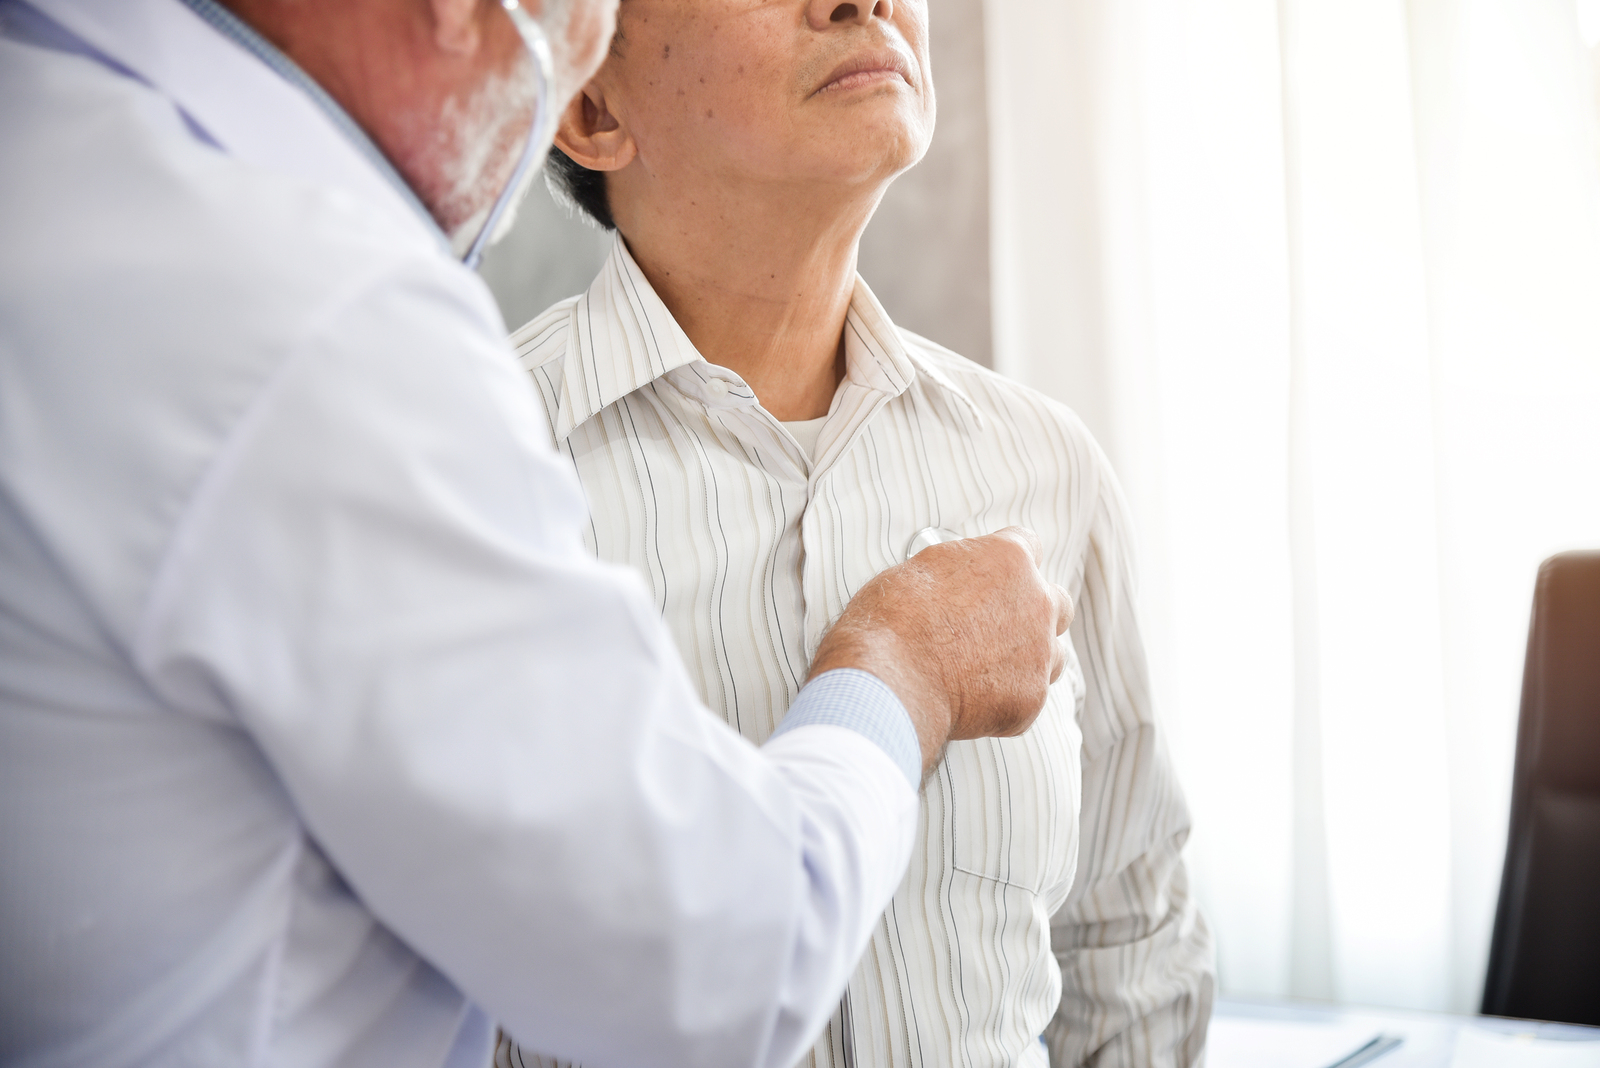 Walking pneumonia: What does it mean? - Mayo Clinic